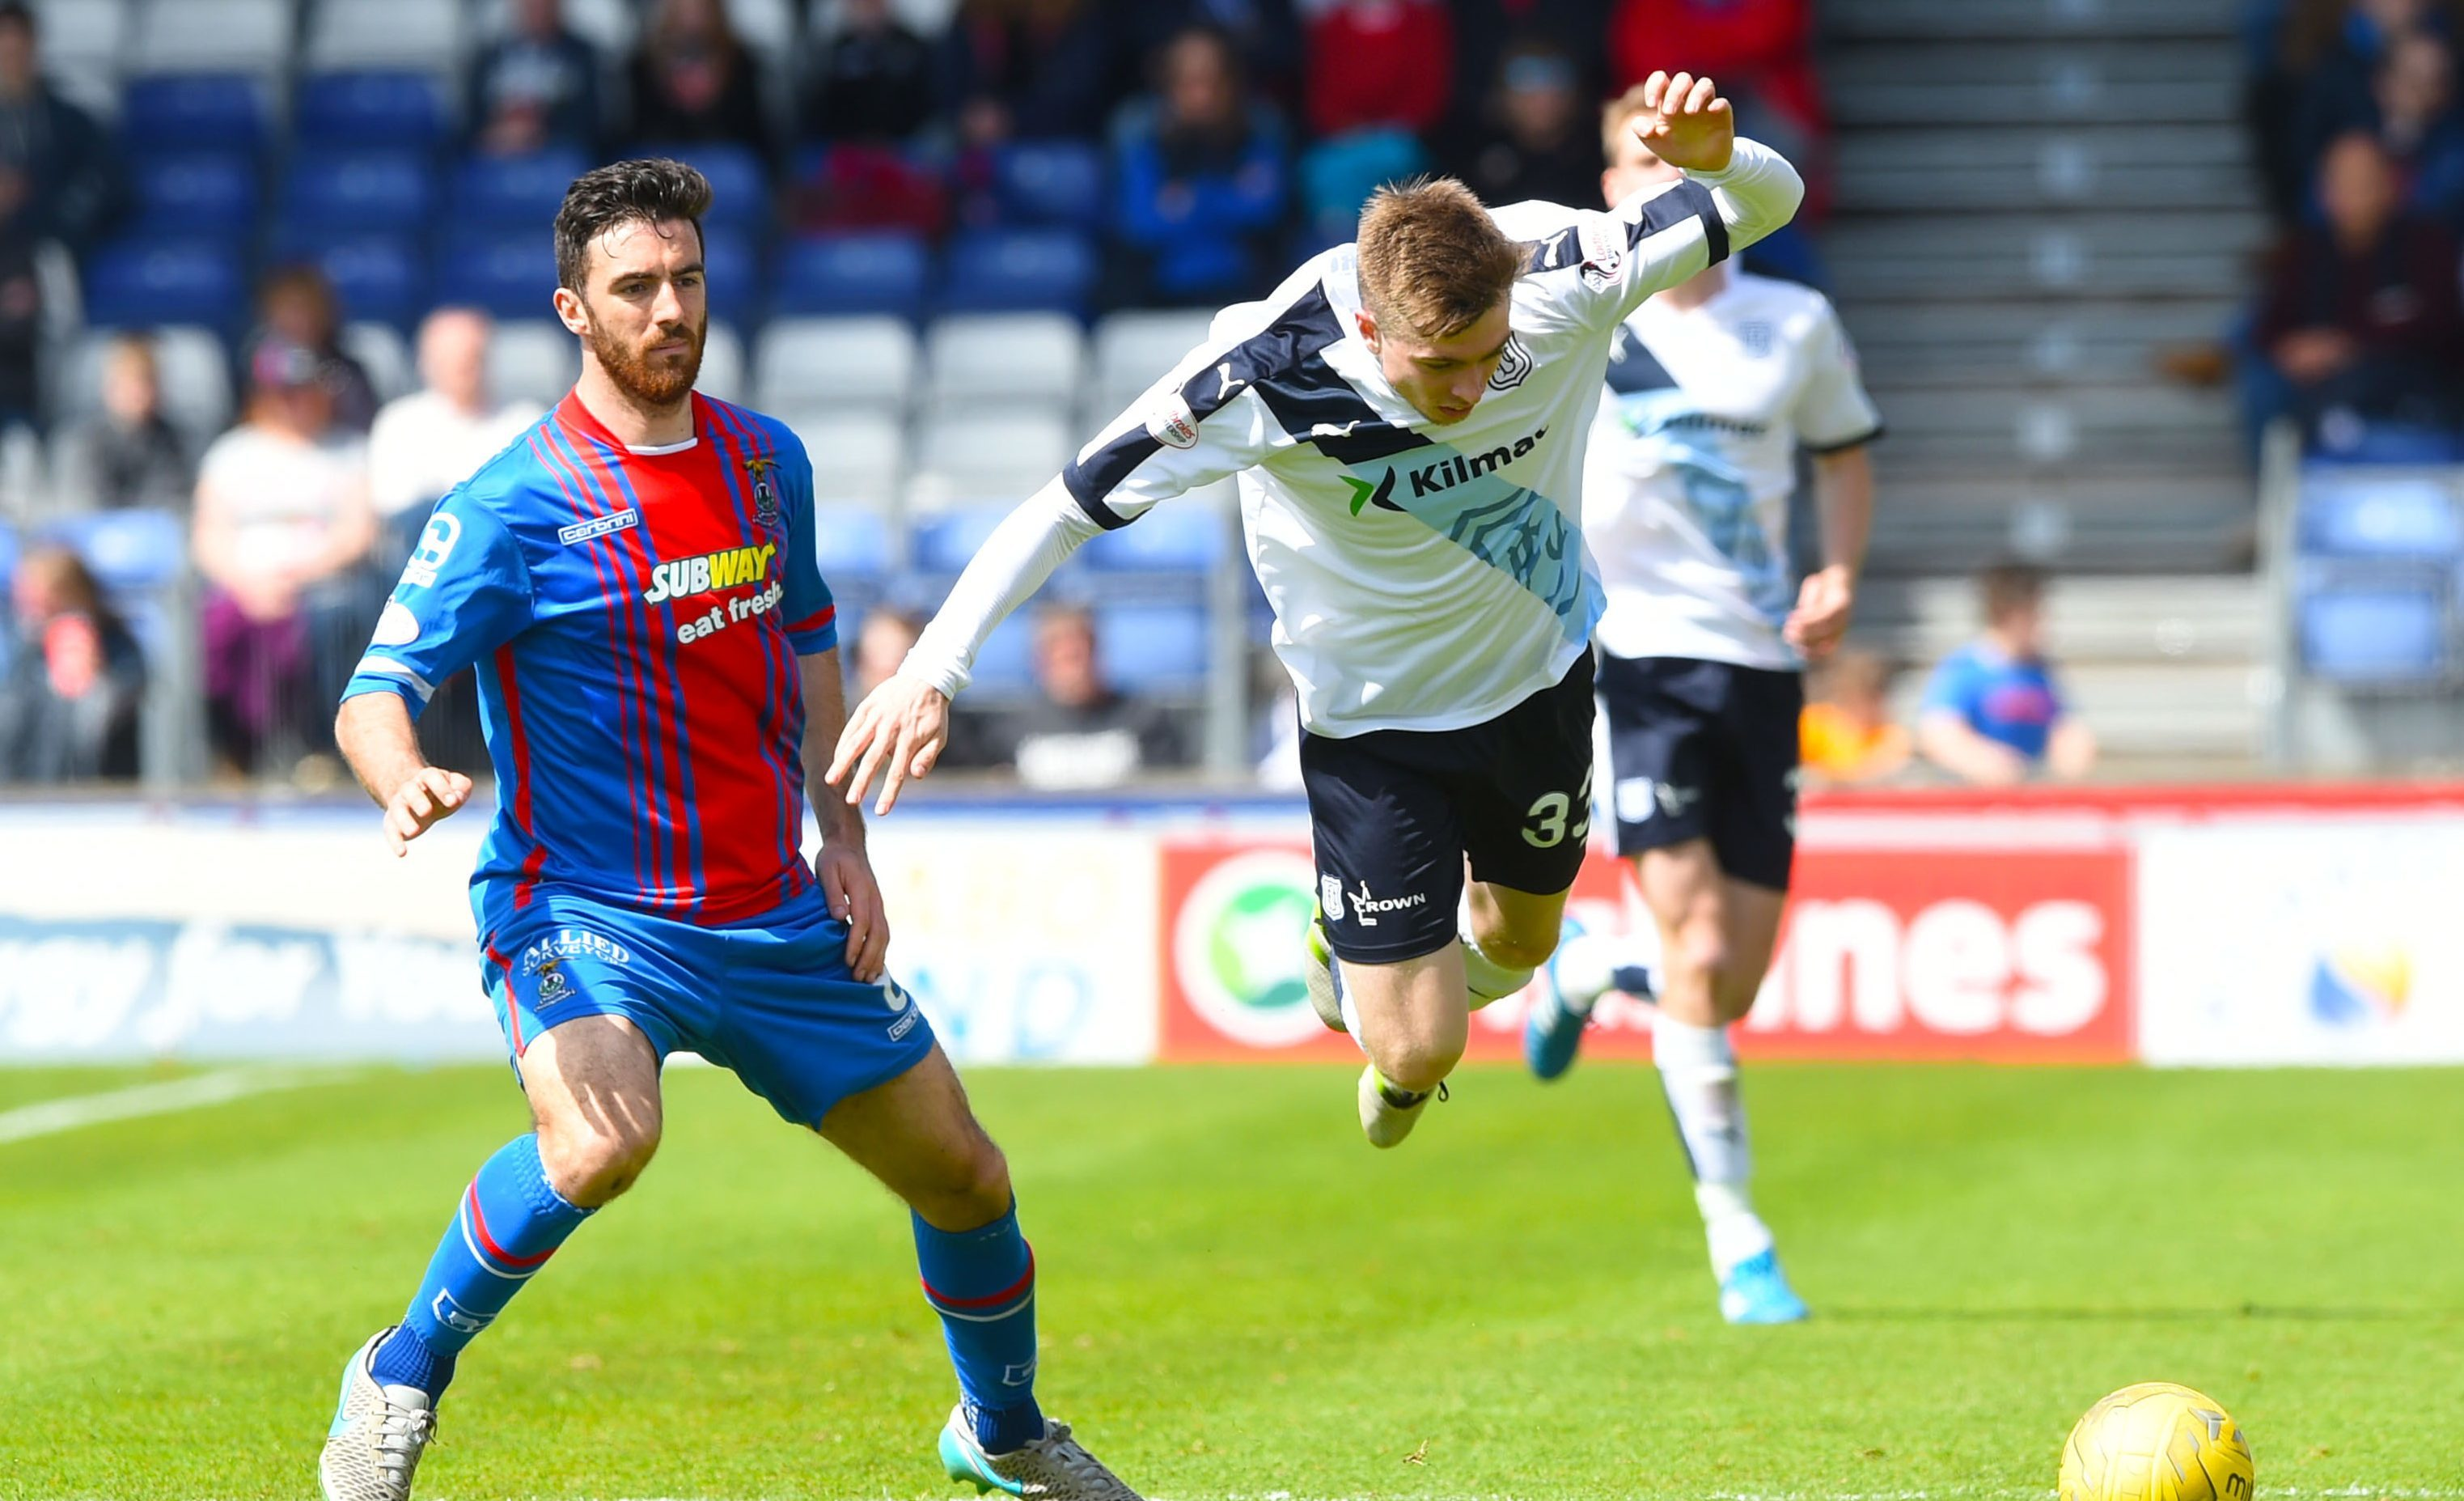 Action from the game between the two sides in Inverness in May.